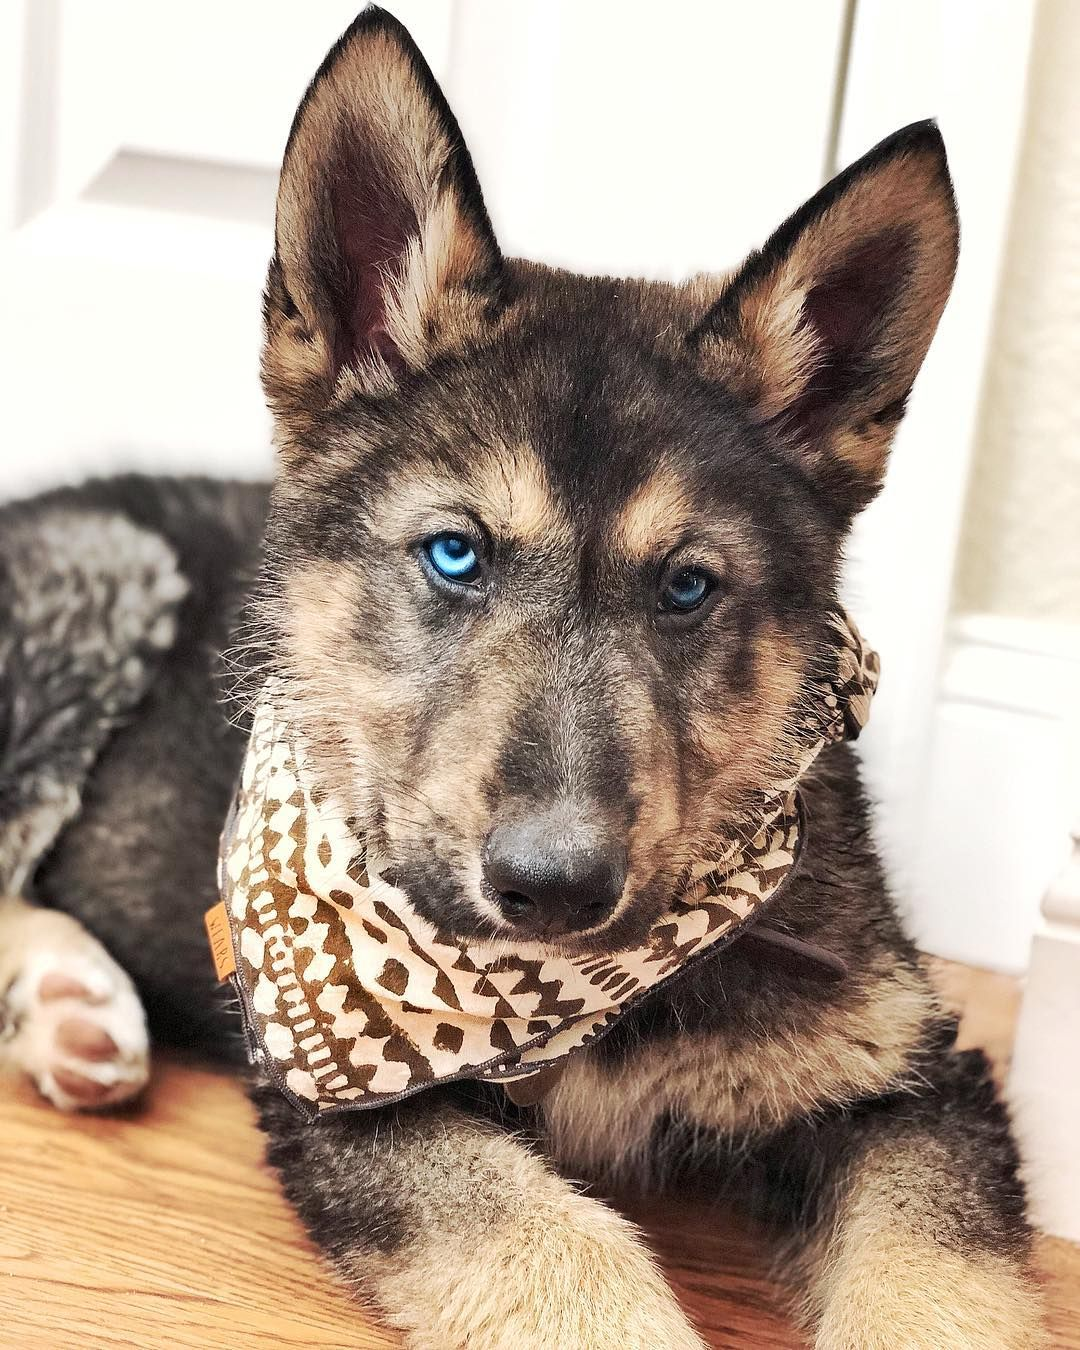 632 Likes 31 Comments Koa Kai Alohakoa On Instagram Baby Blue Eyes Nativeam Native American Indian Dog American Indian Dog Husky Puppy